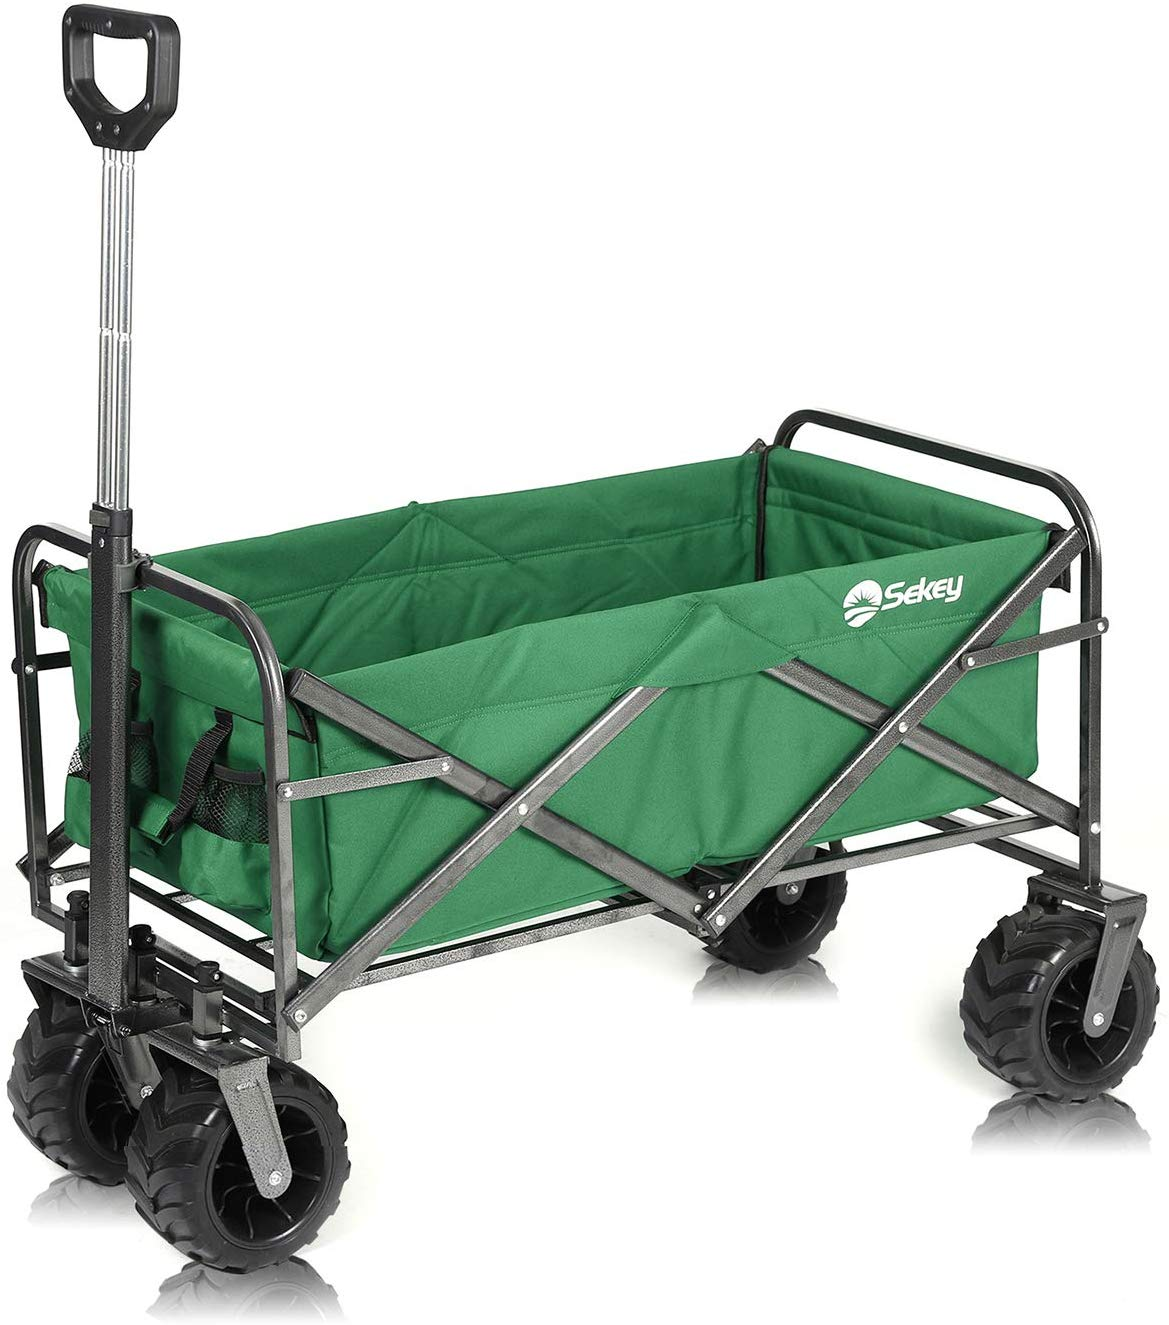 Sekey Folding Wagon Cart Beach Cart Collapsible Outdoor Utility Wagon Heavy Duty Wagon Collapsible Wagon with All-Terrain Wide Wheels and Telescopic Handle